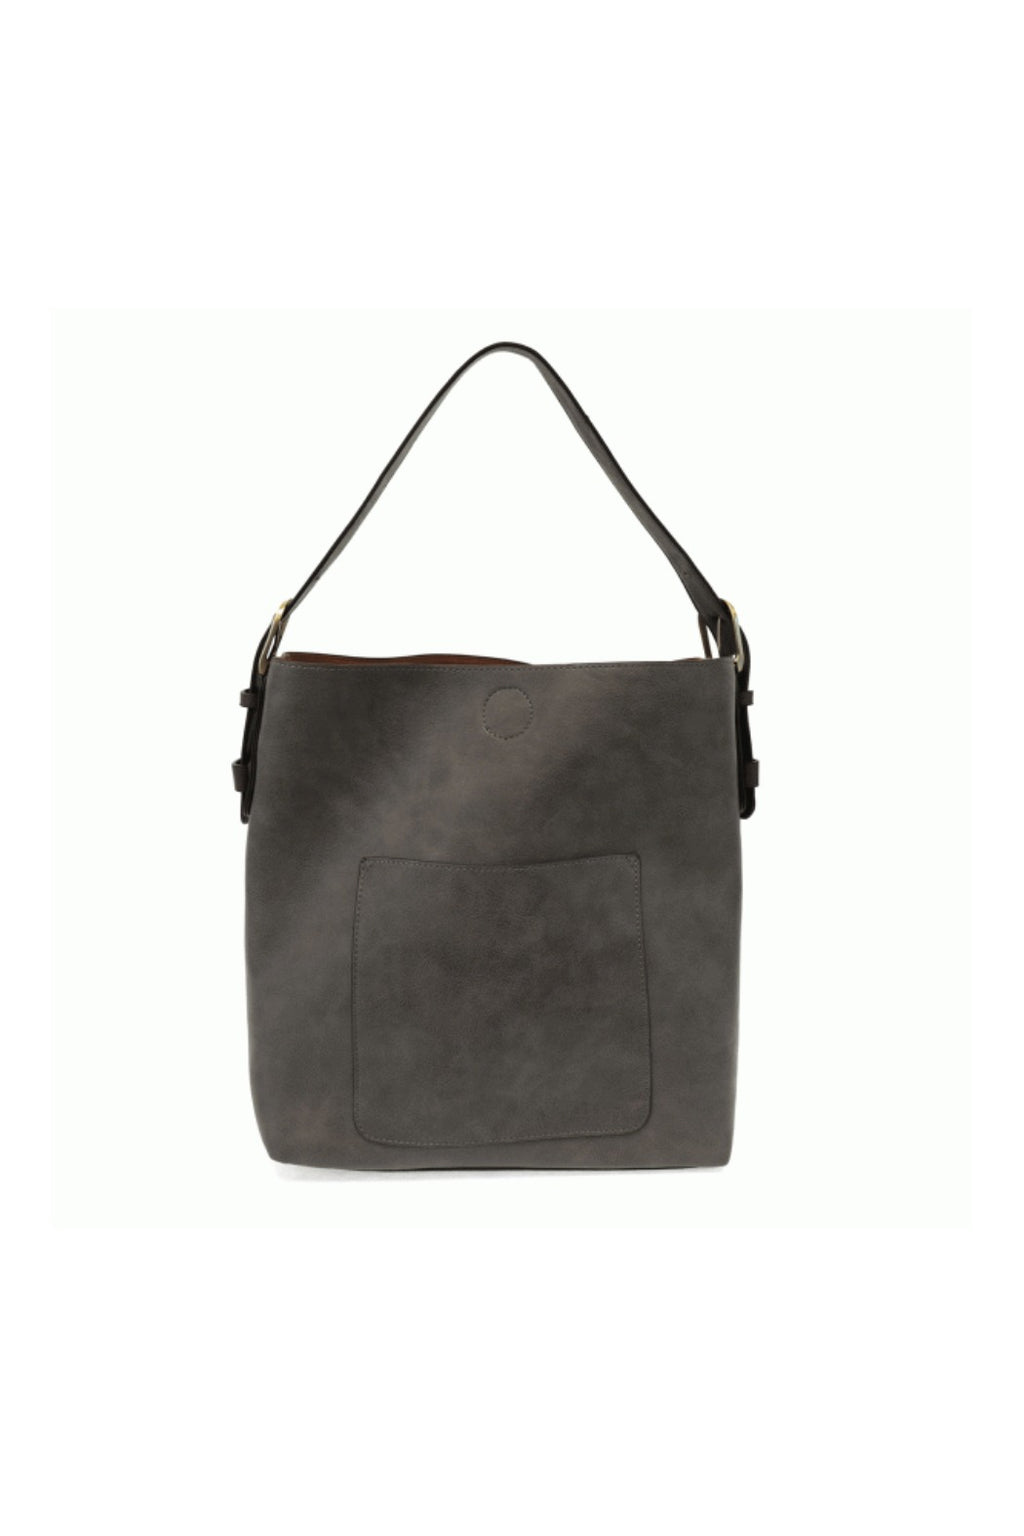 Joy Susan Classic Hobo Handbag in Charcoal w/ Black Handle